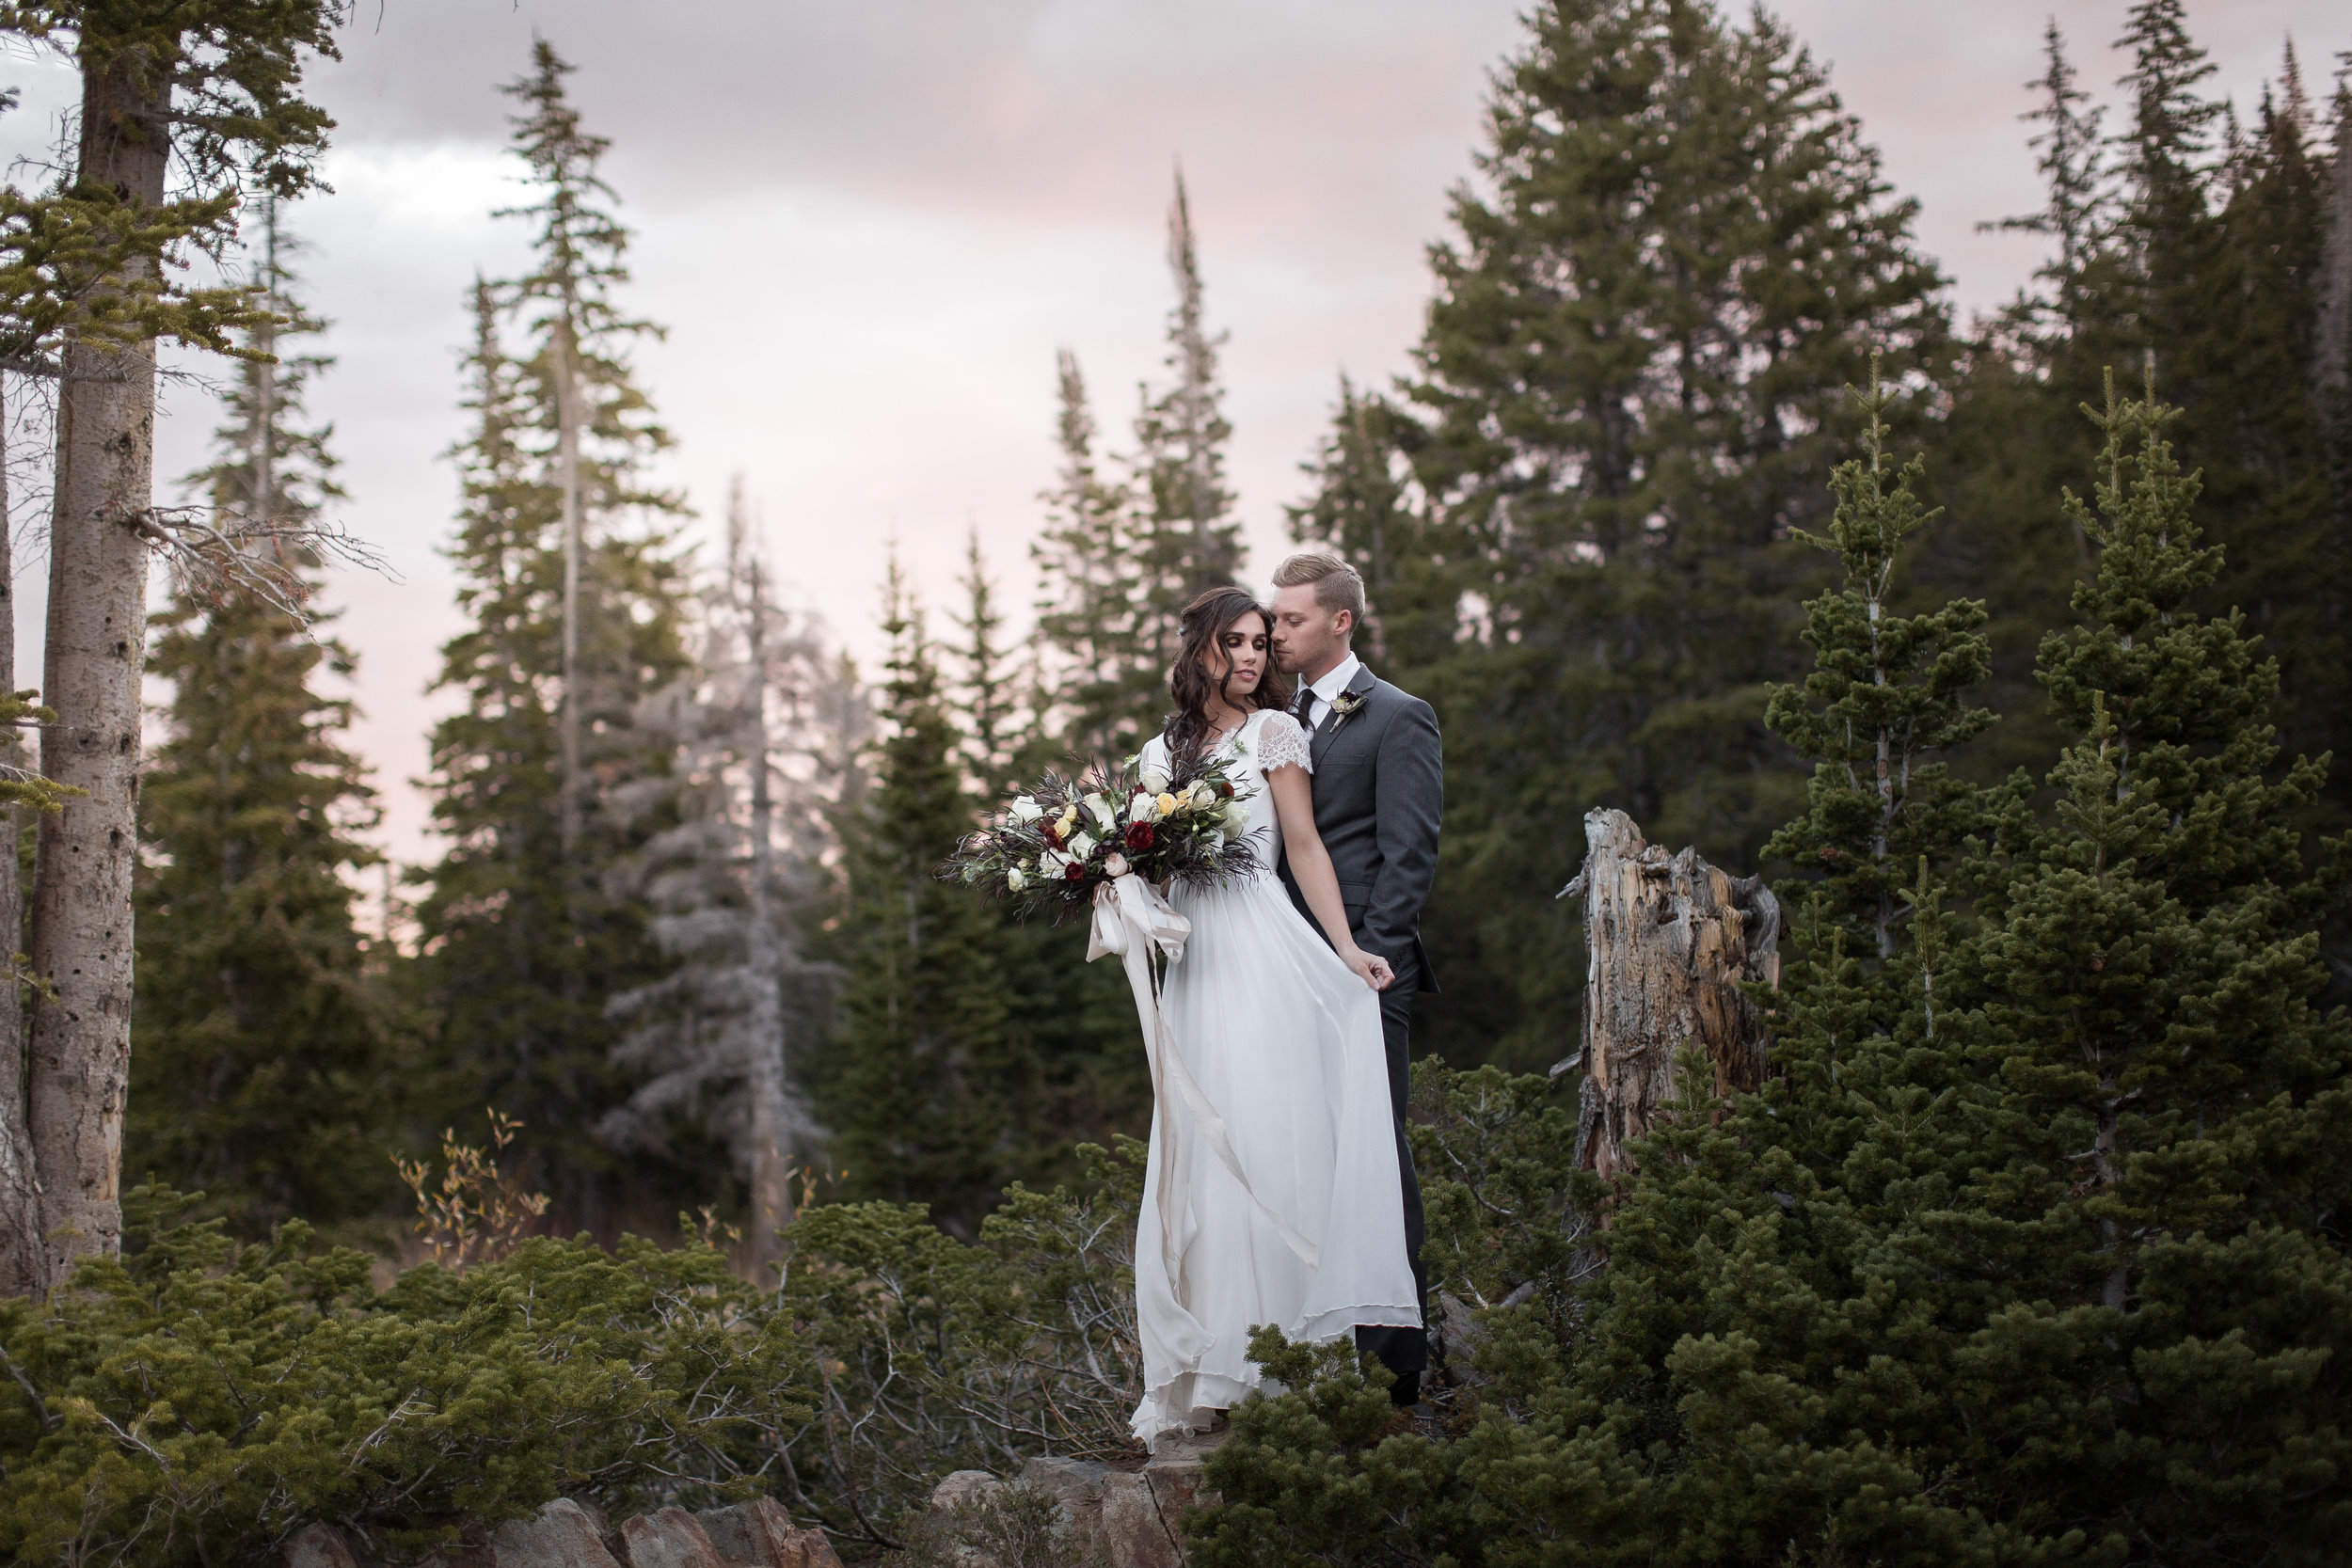 UtahValleyBrideShootTR2016 (9 of 110).jpg